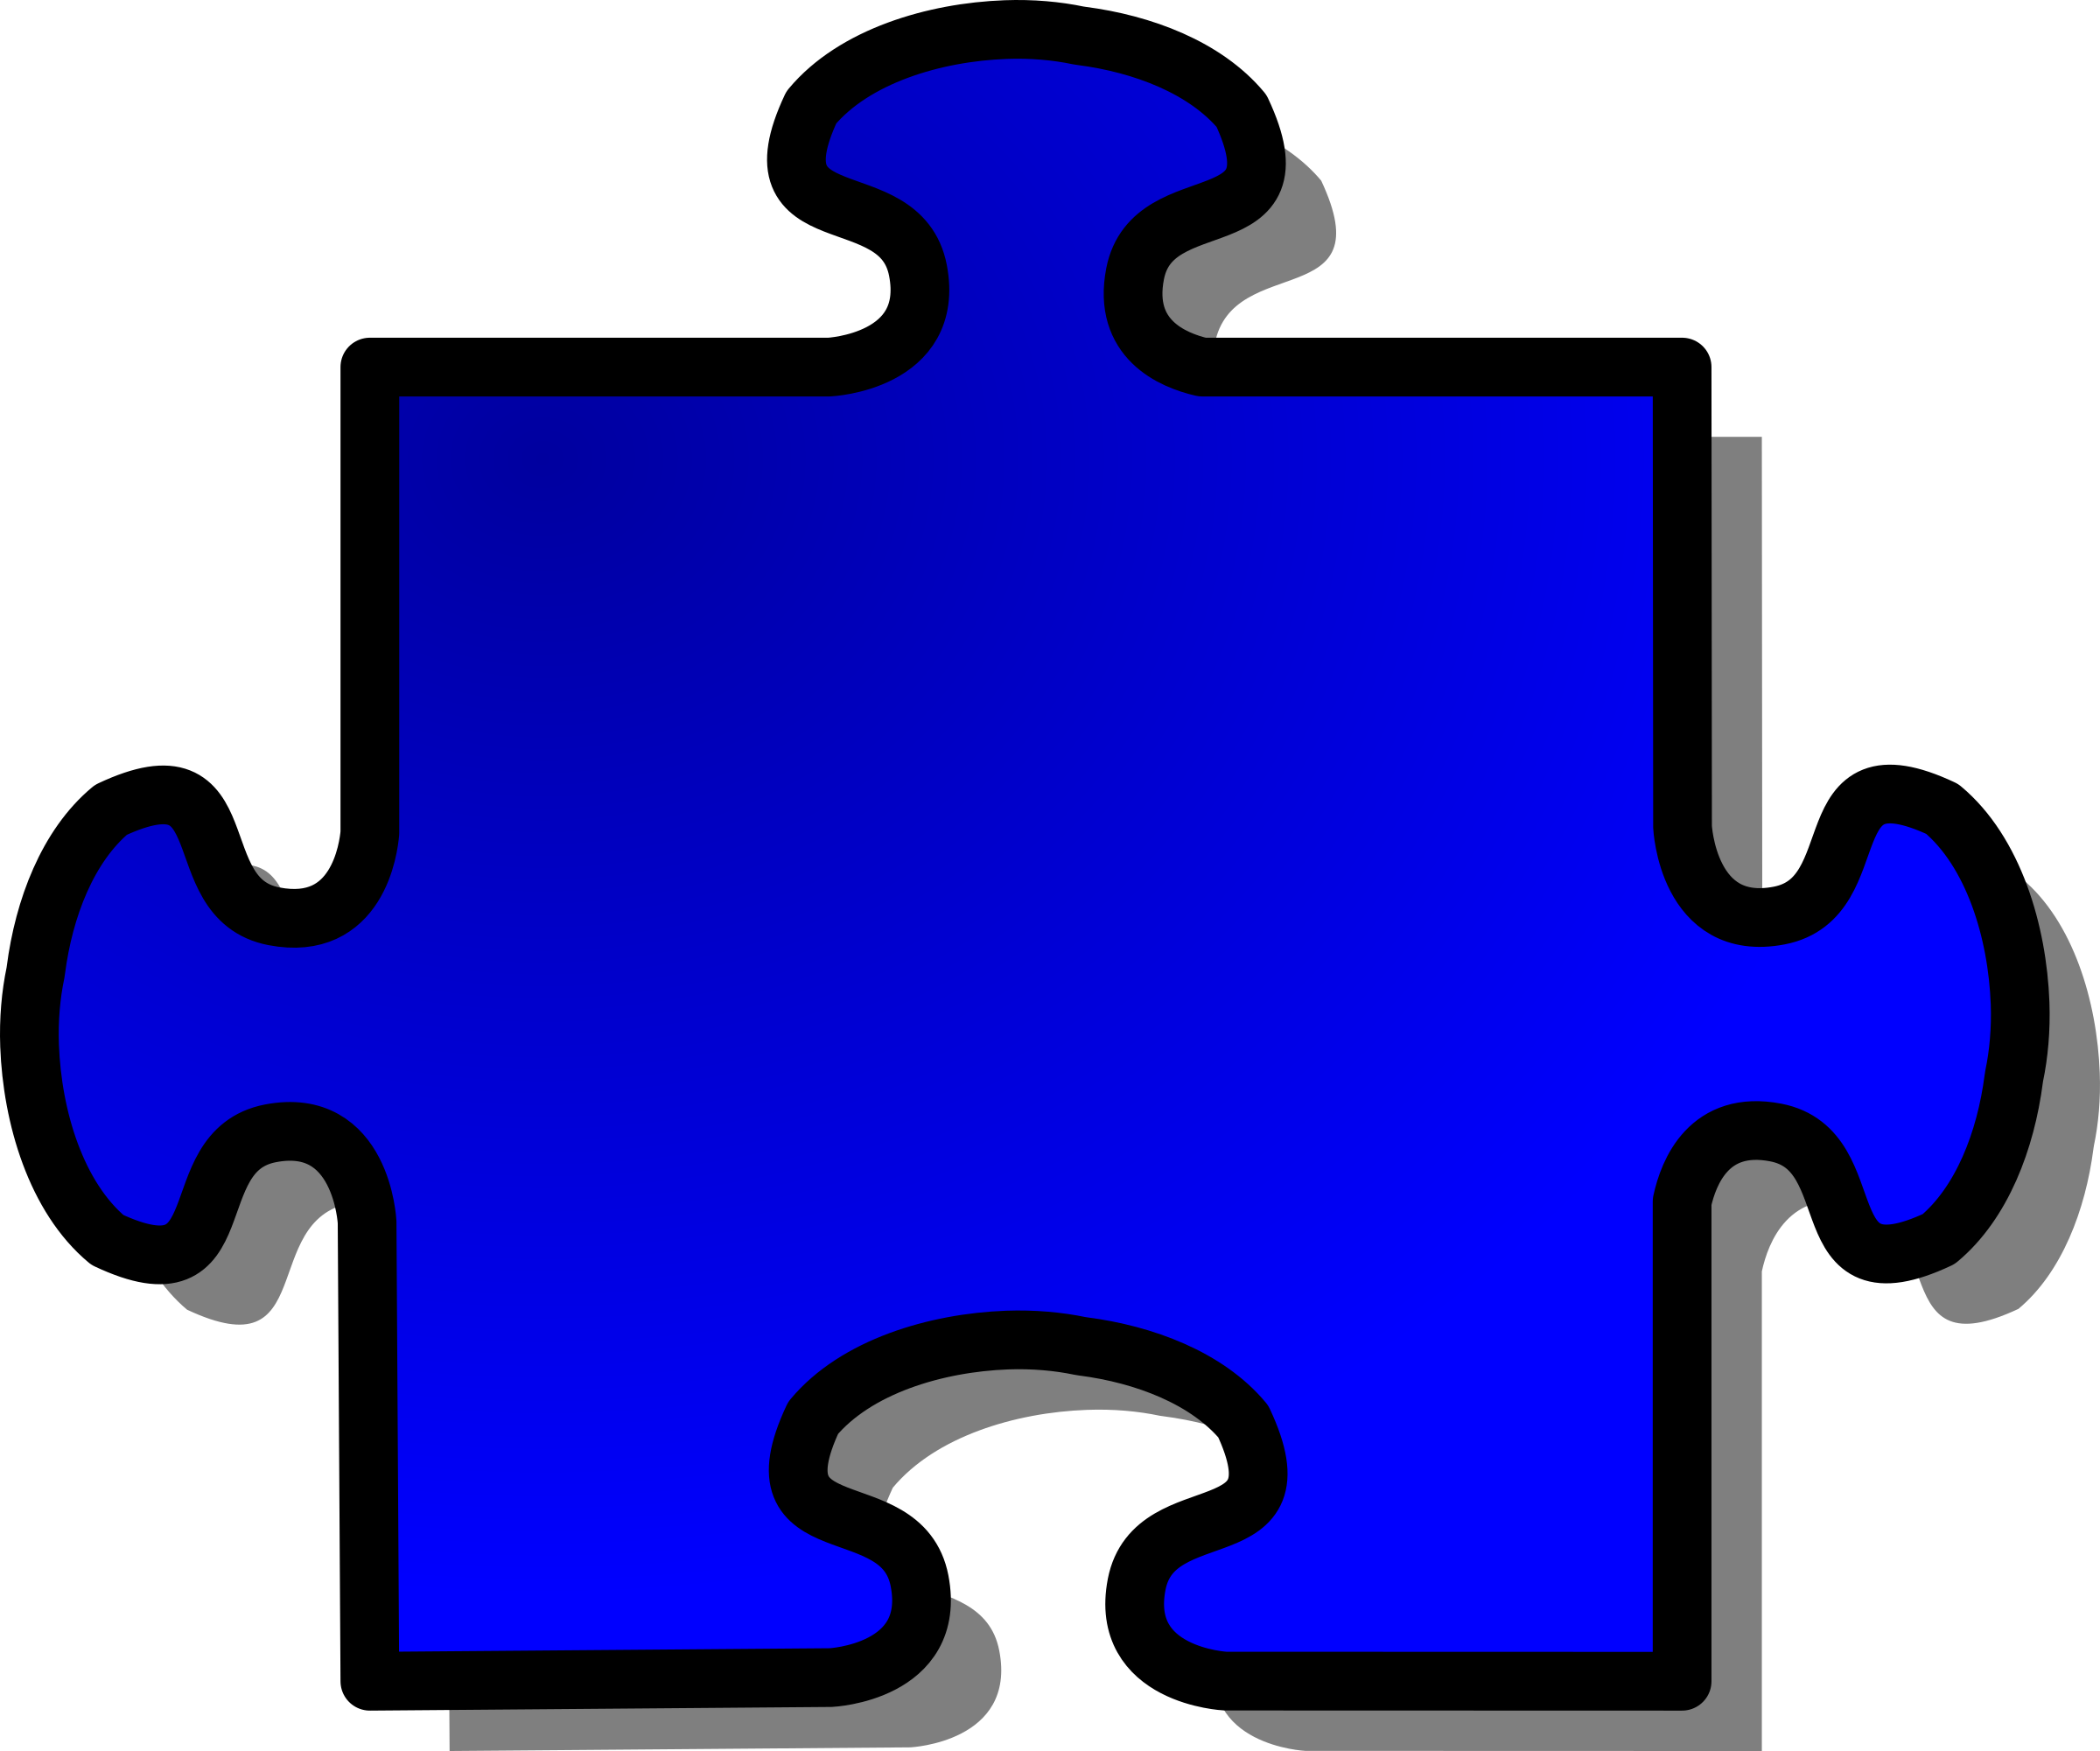 Blue Jigsaw piece 08 by nicubunu